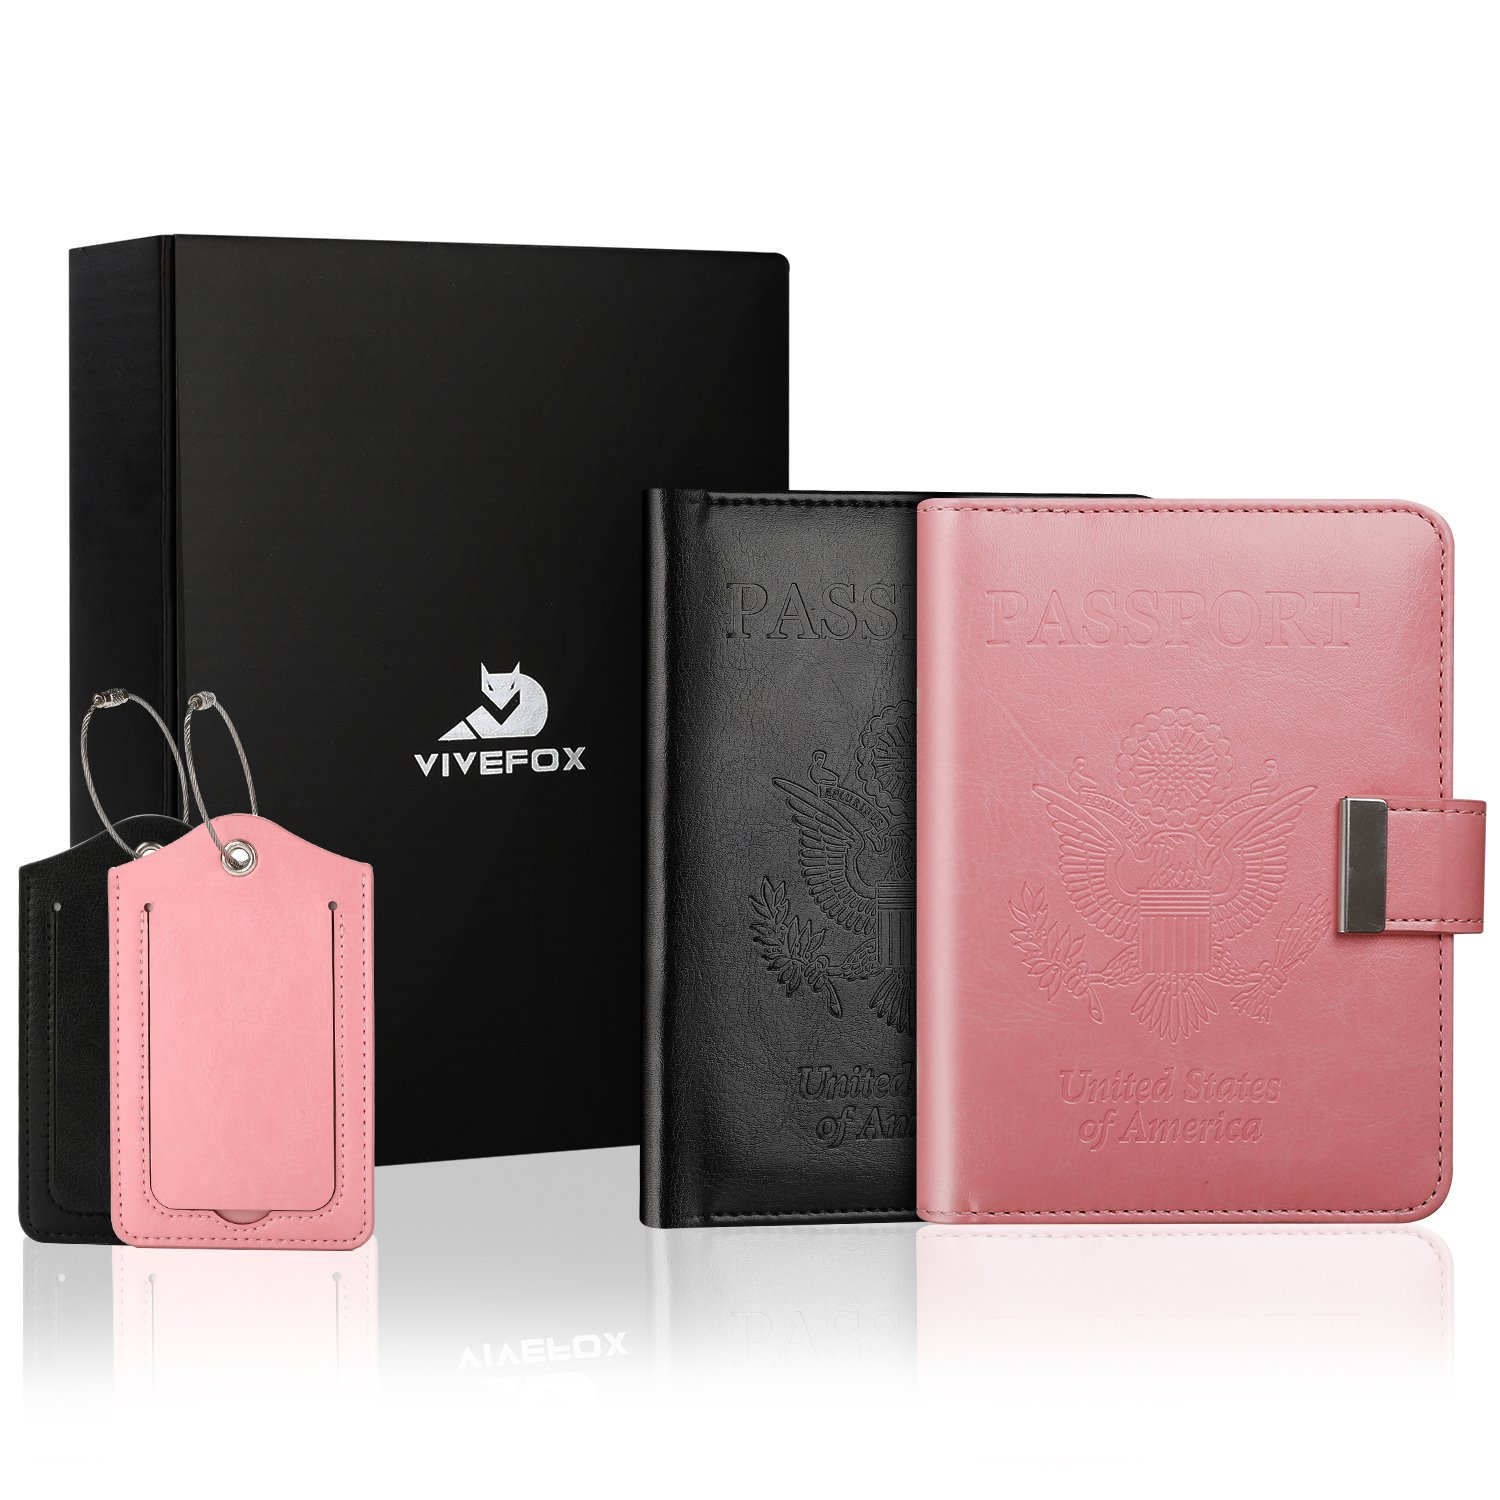 Rfid Couple Passport Holders Covers, Vivefox Family Travel Wallet with 2 Luggage Tags Gift Choice(Black&Rose Pink)